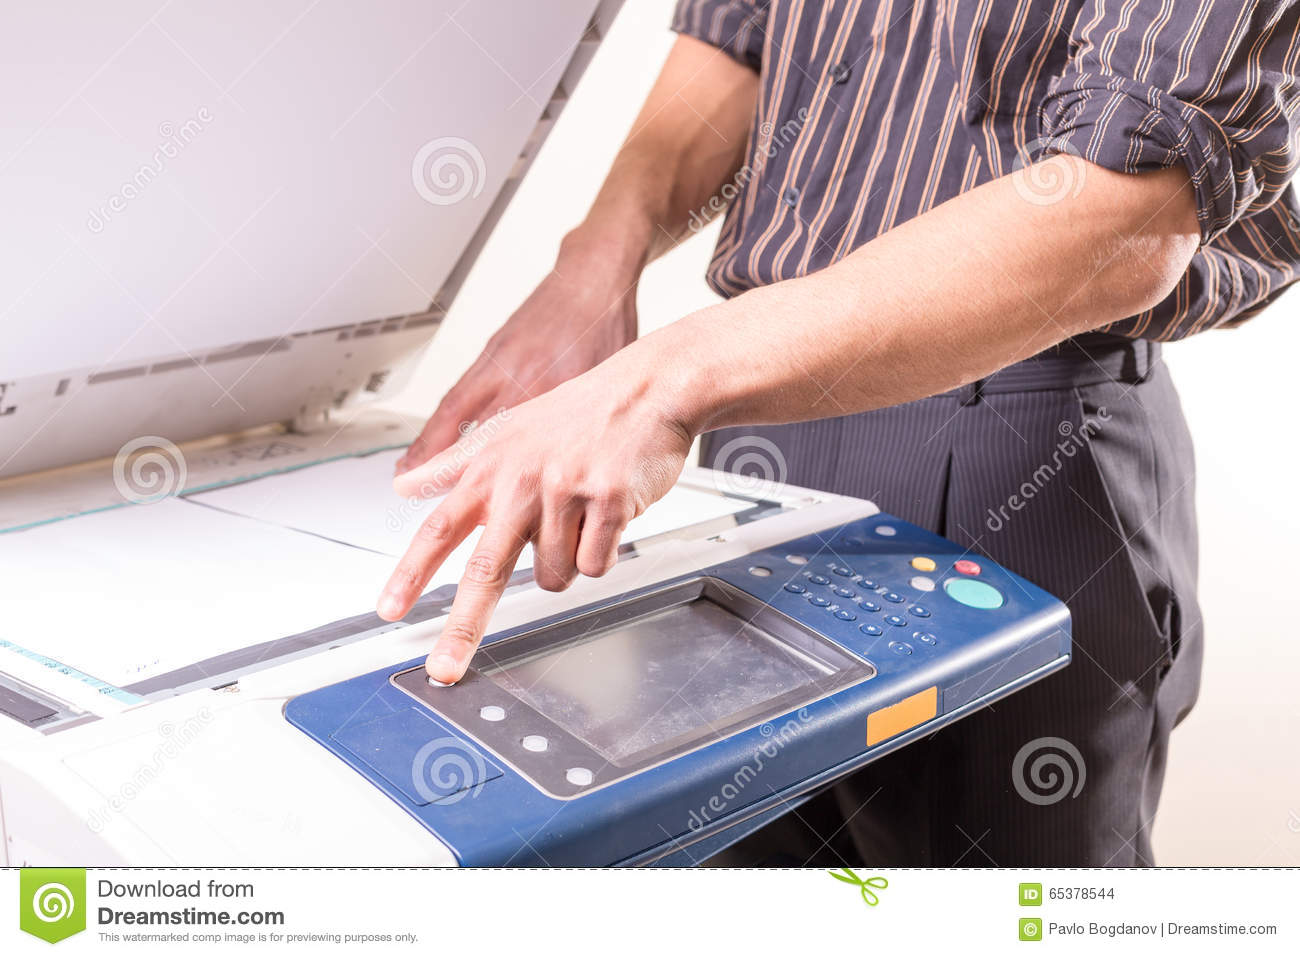 how to make copies on a copy machine